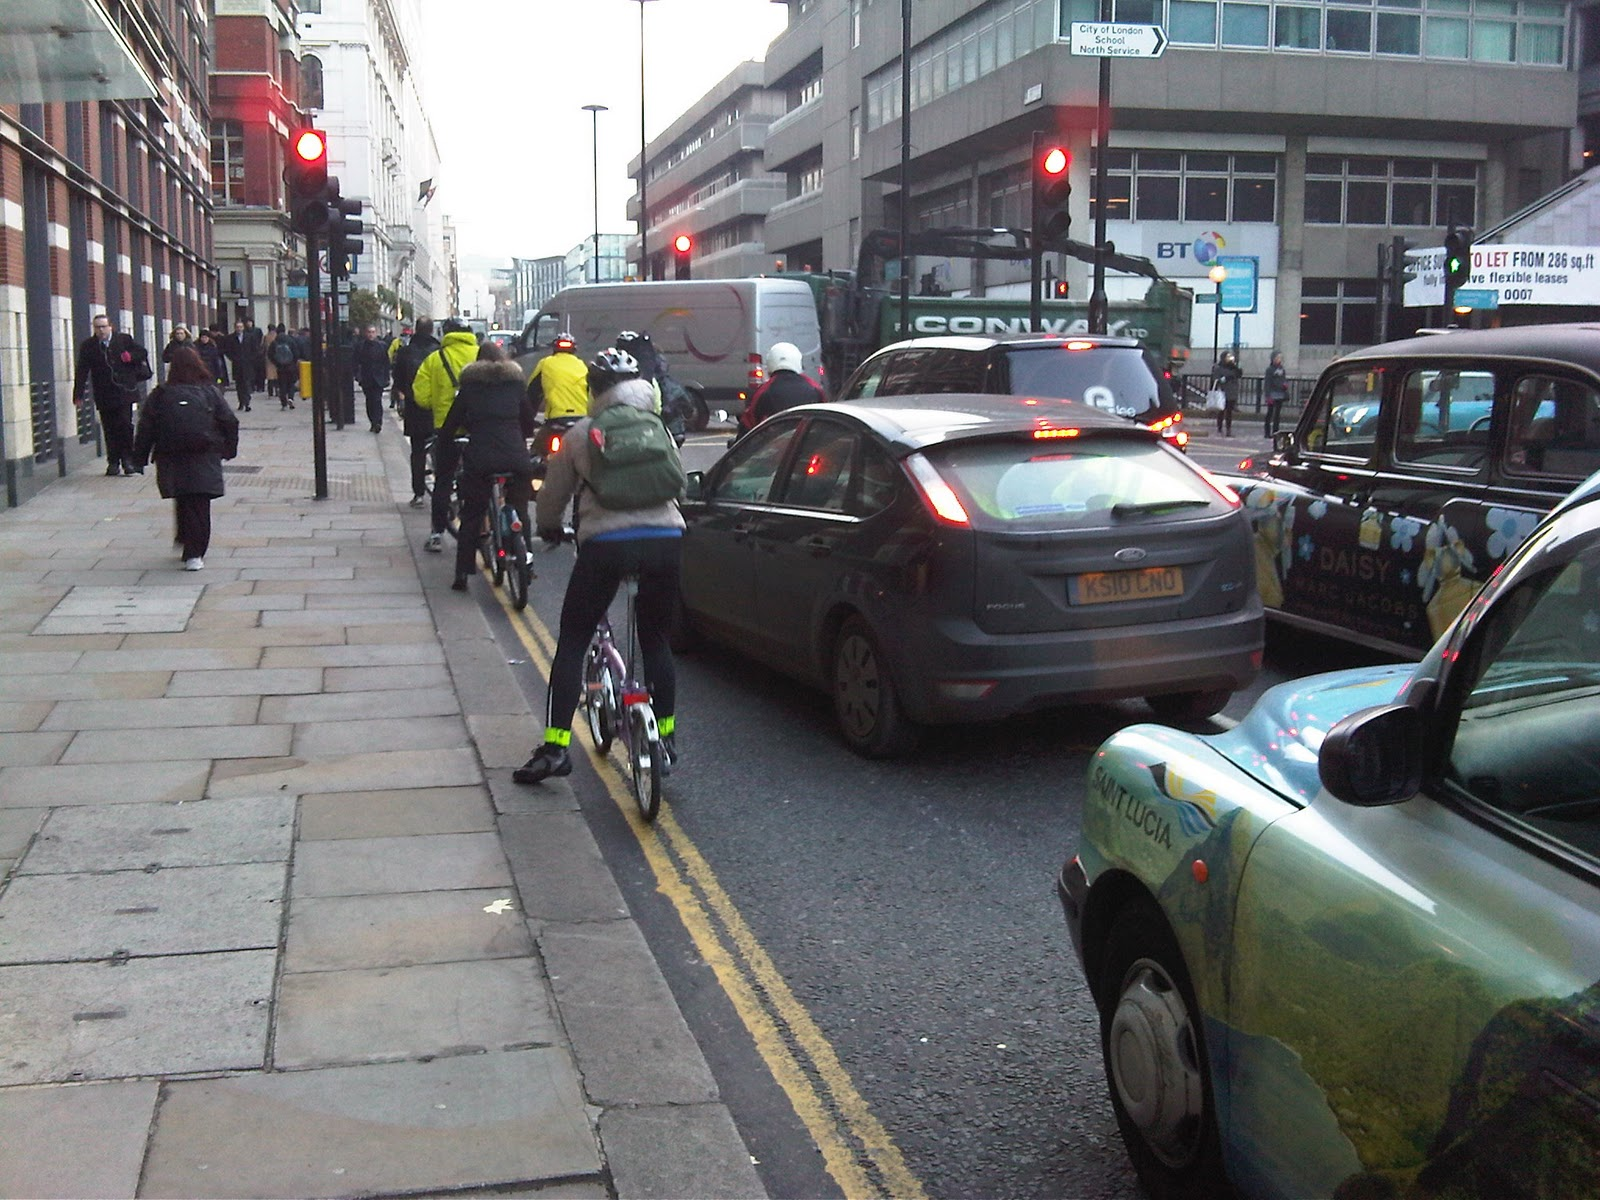 Cyclists in the City: November 2010